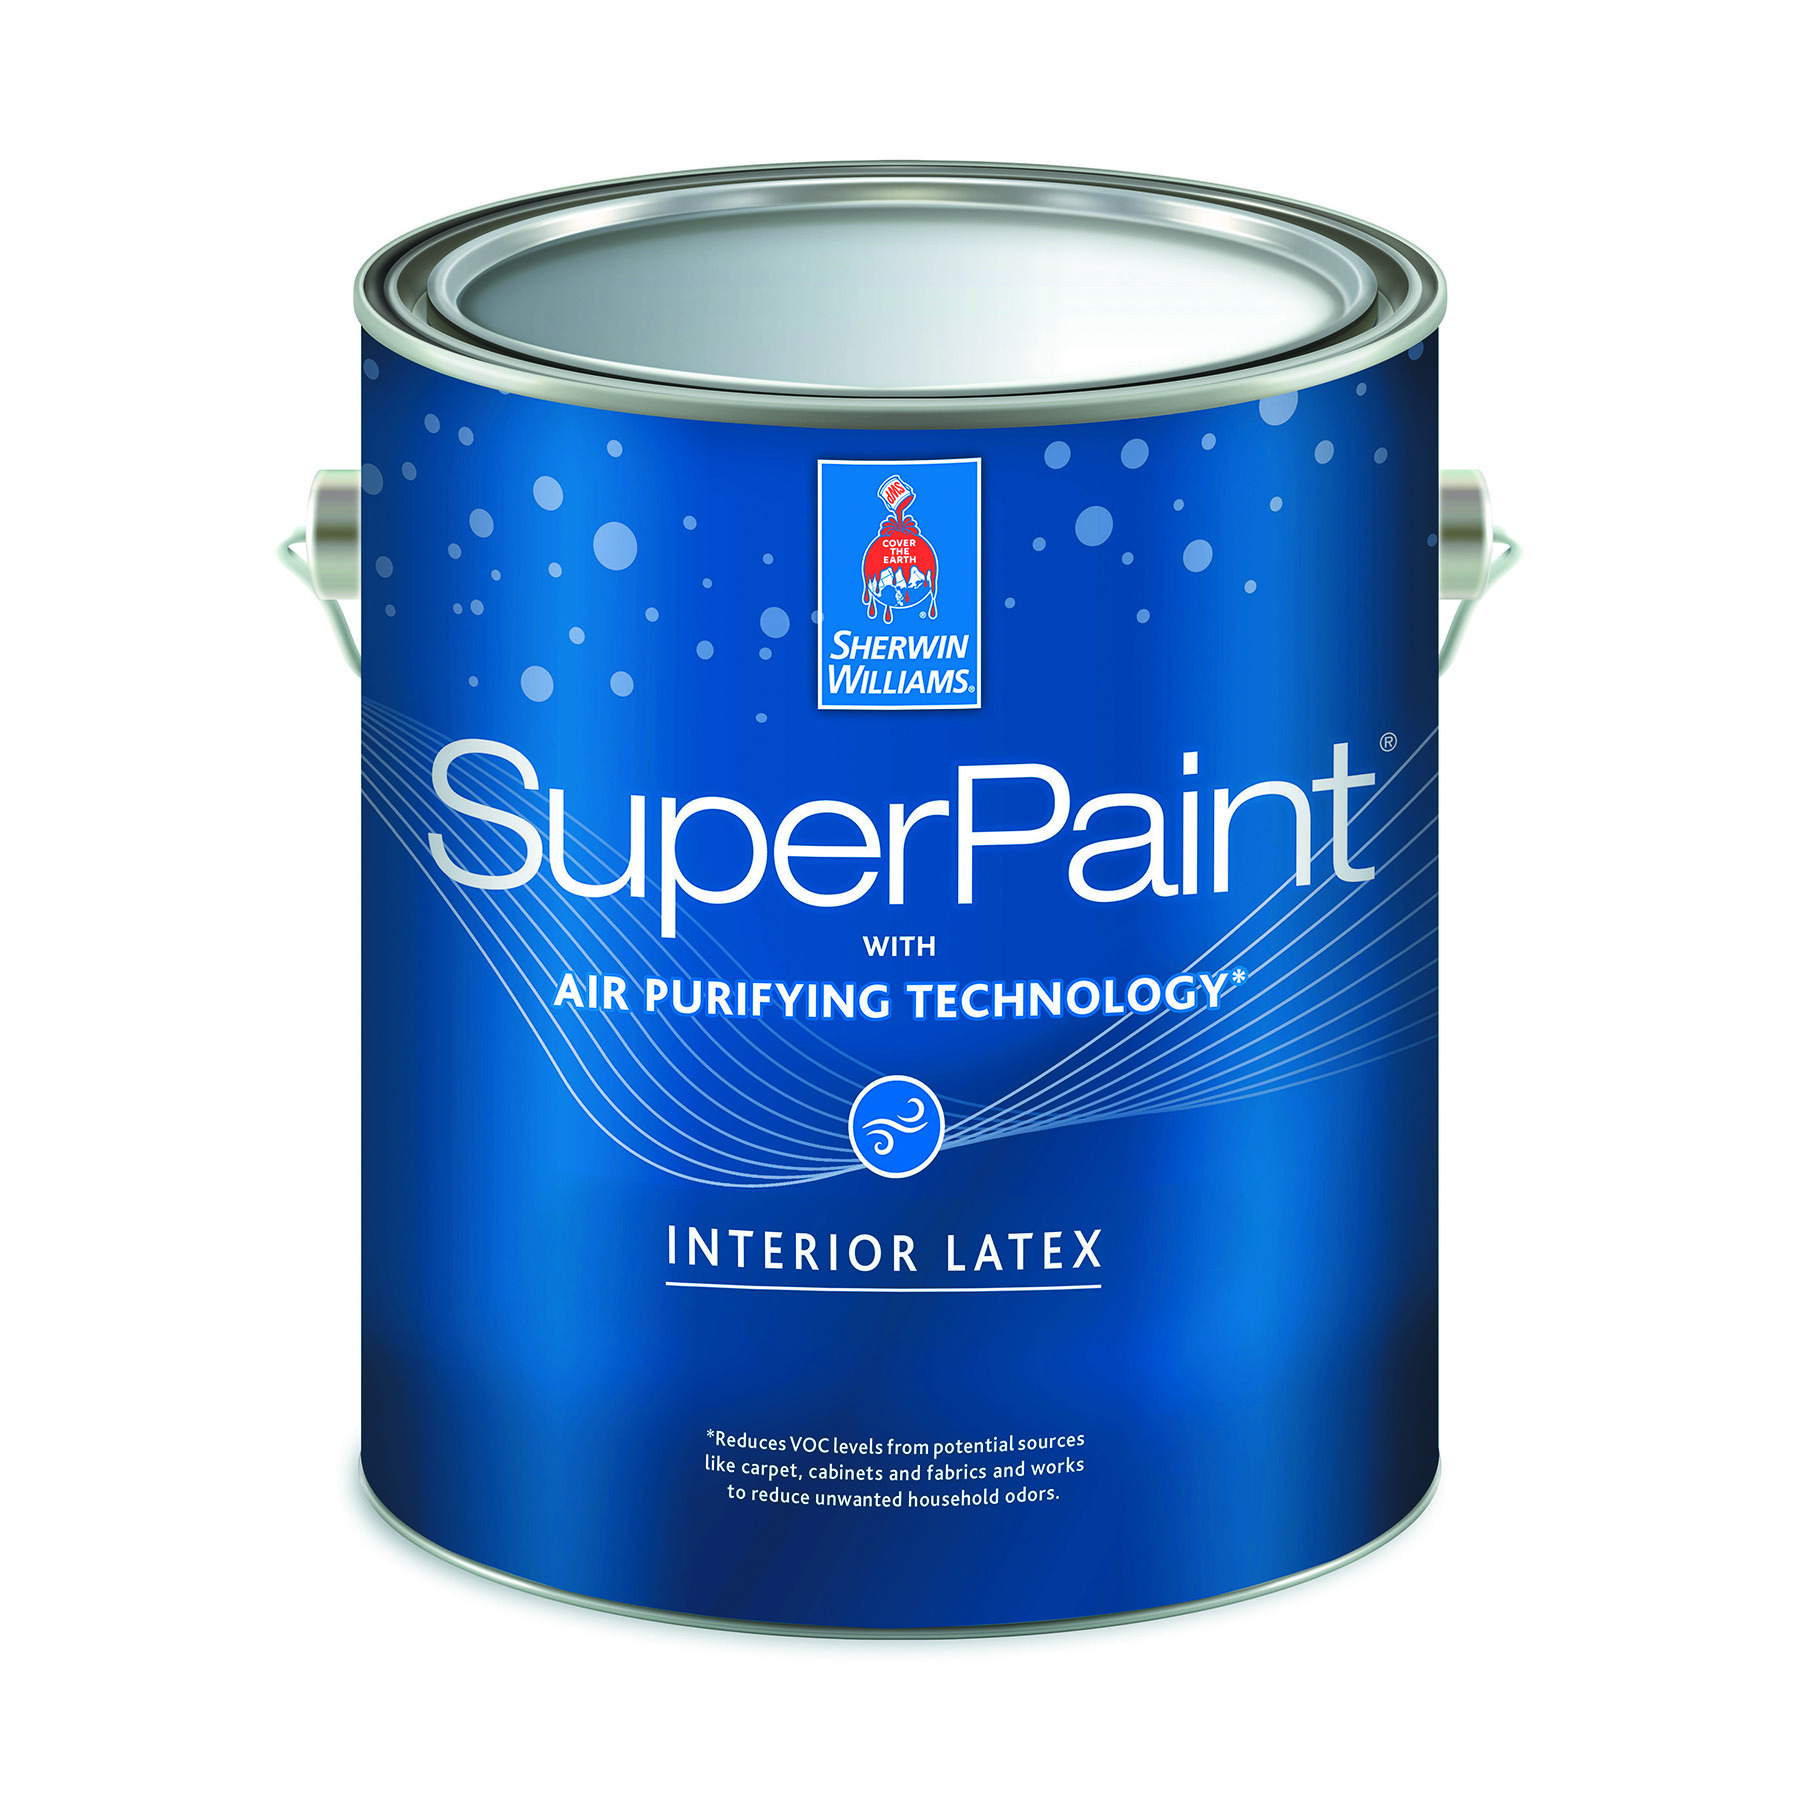 Sherwin-Williams SuperPaint With Air Purifying Technology